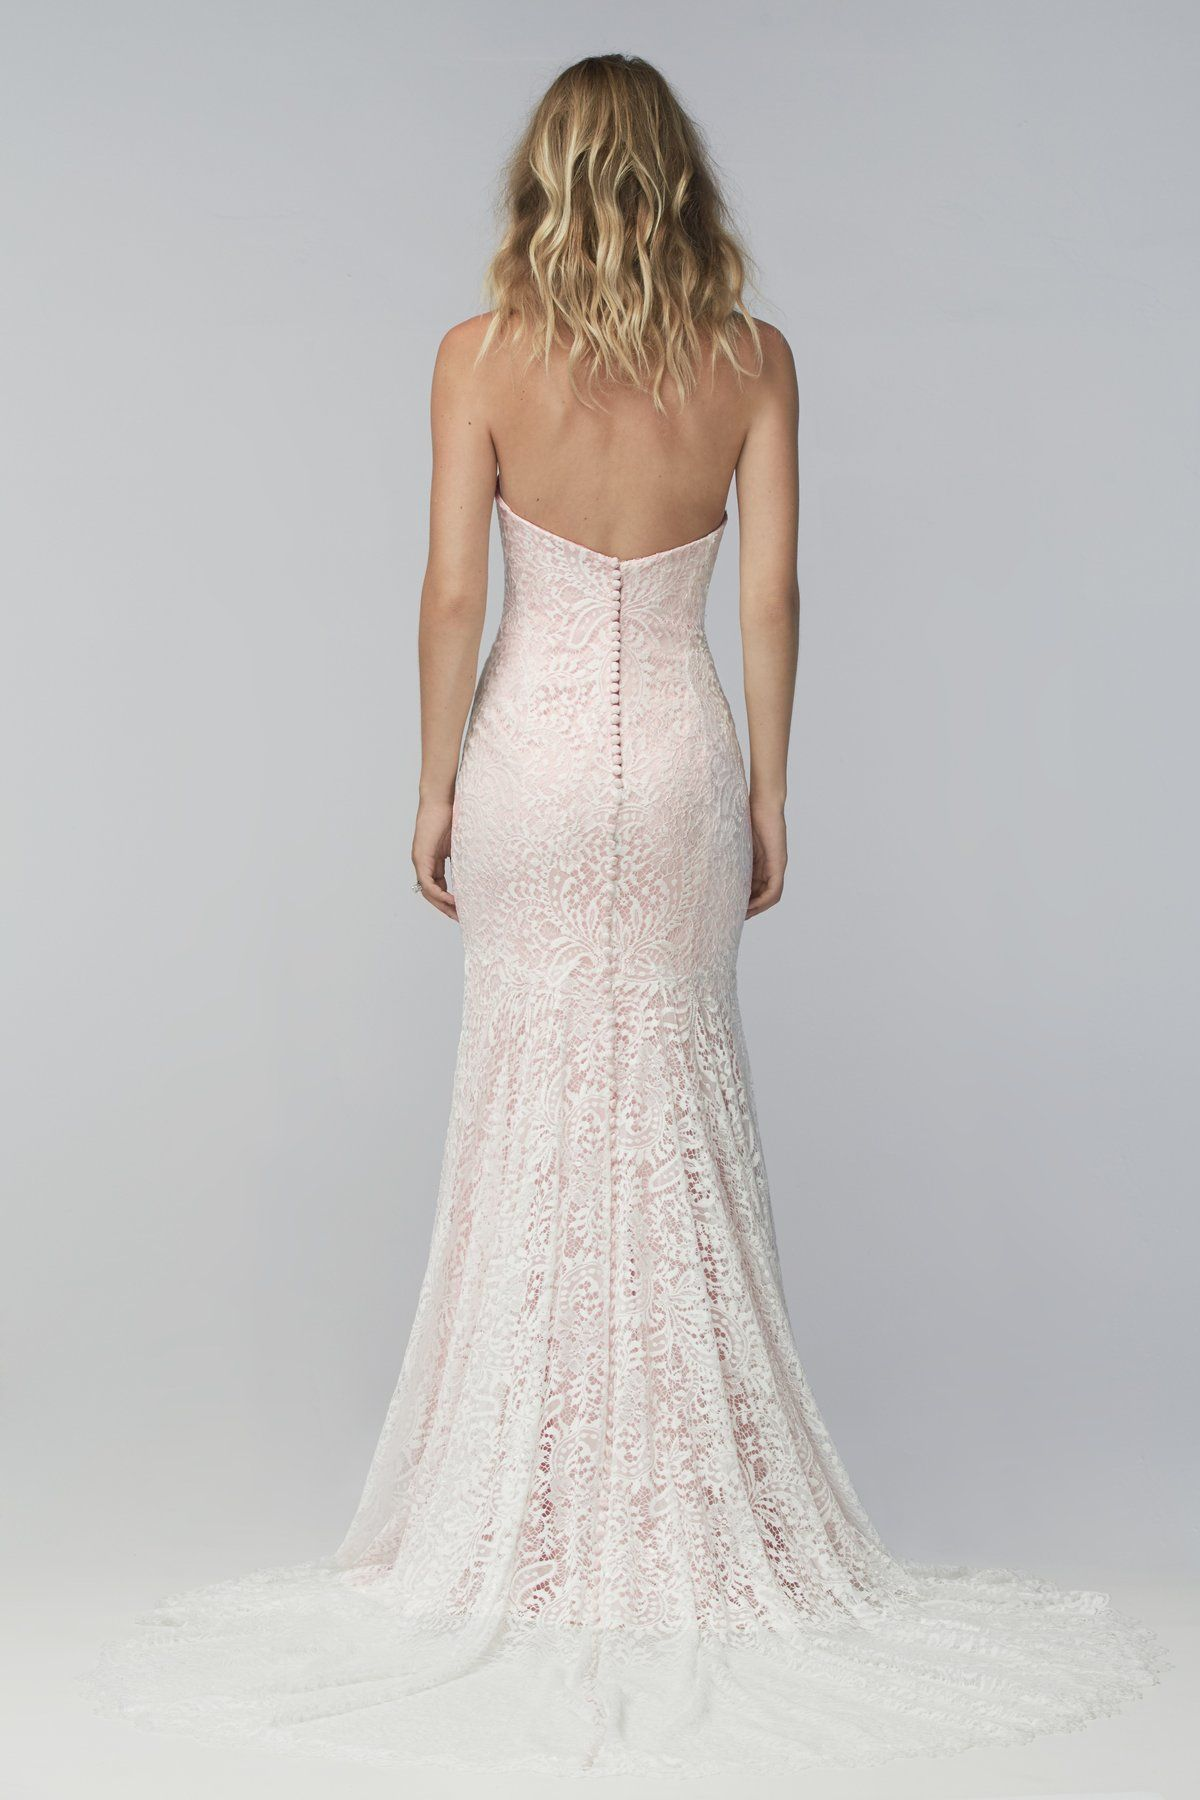 221345e4582b Wtoo Brides Ryley Gown Available at I Do Bridal! Book Your Appointment  today! 3164405949